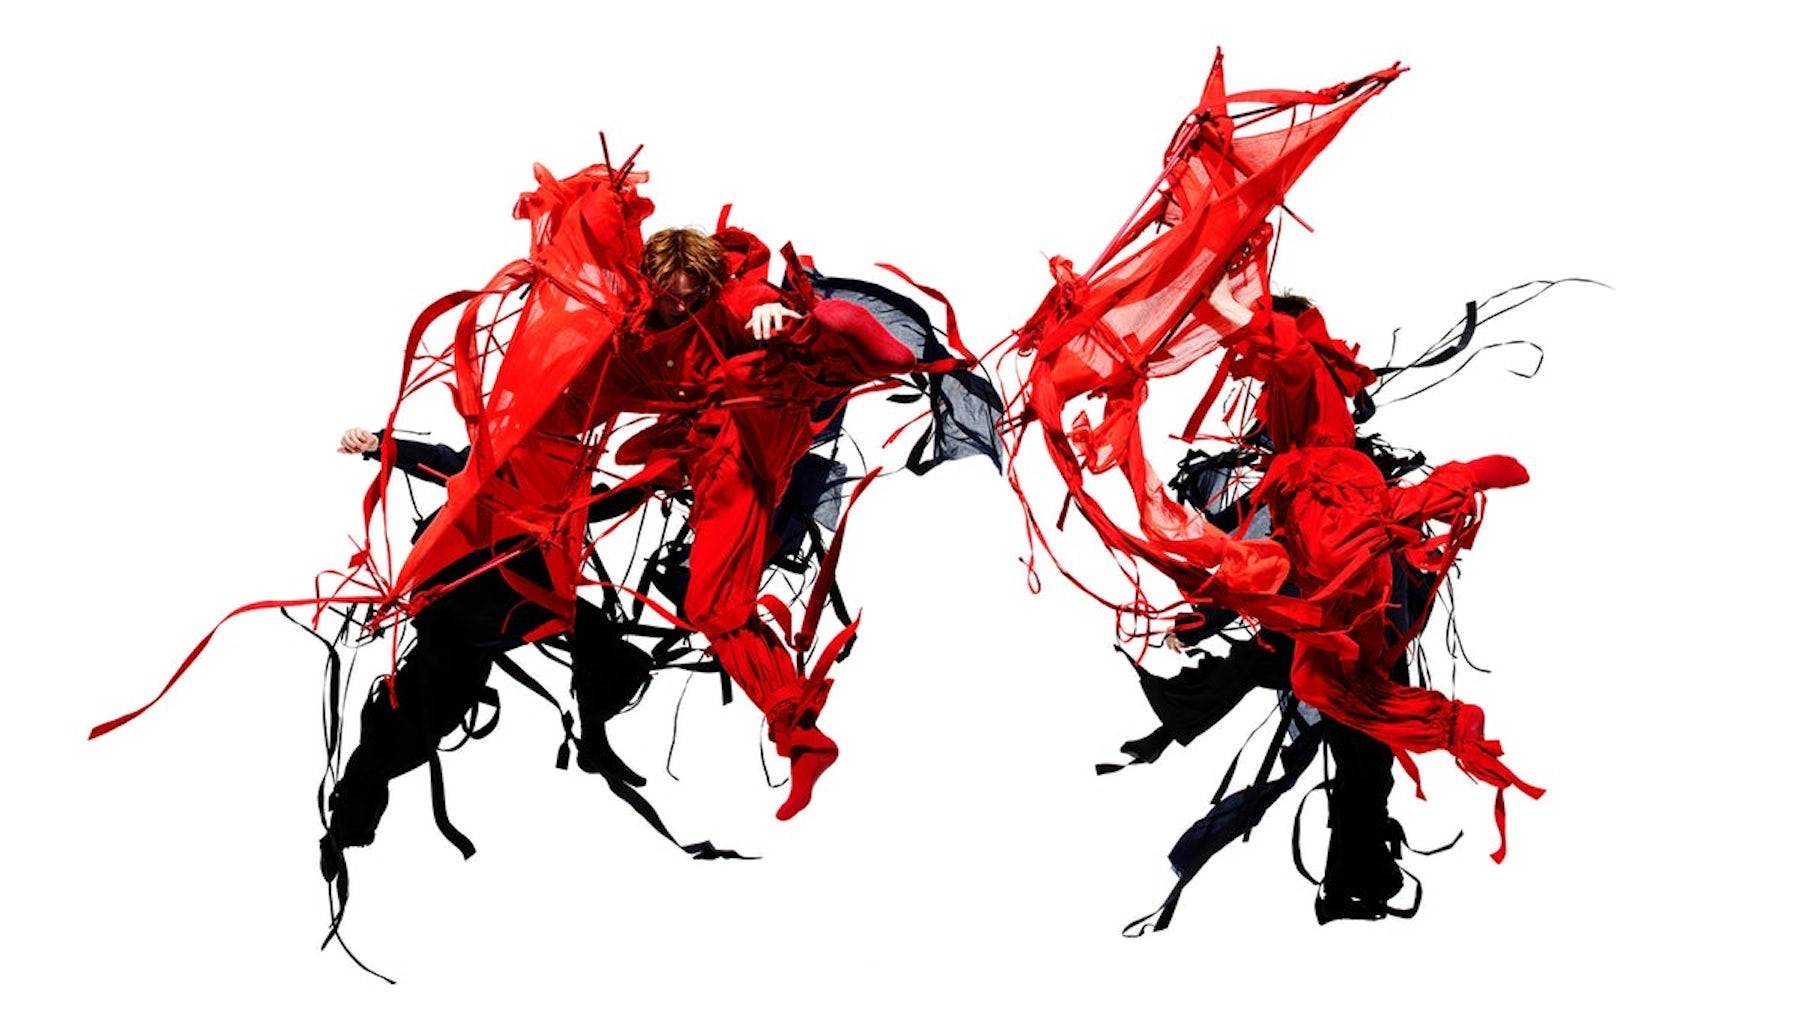 Craig Green AW15 by Nick Knight   Source: courtesy